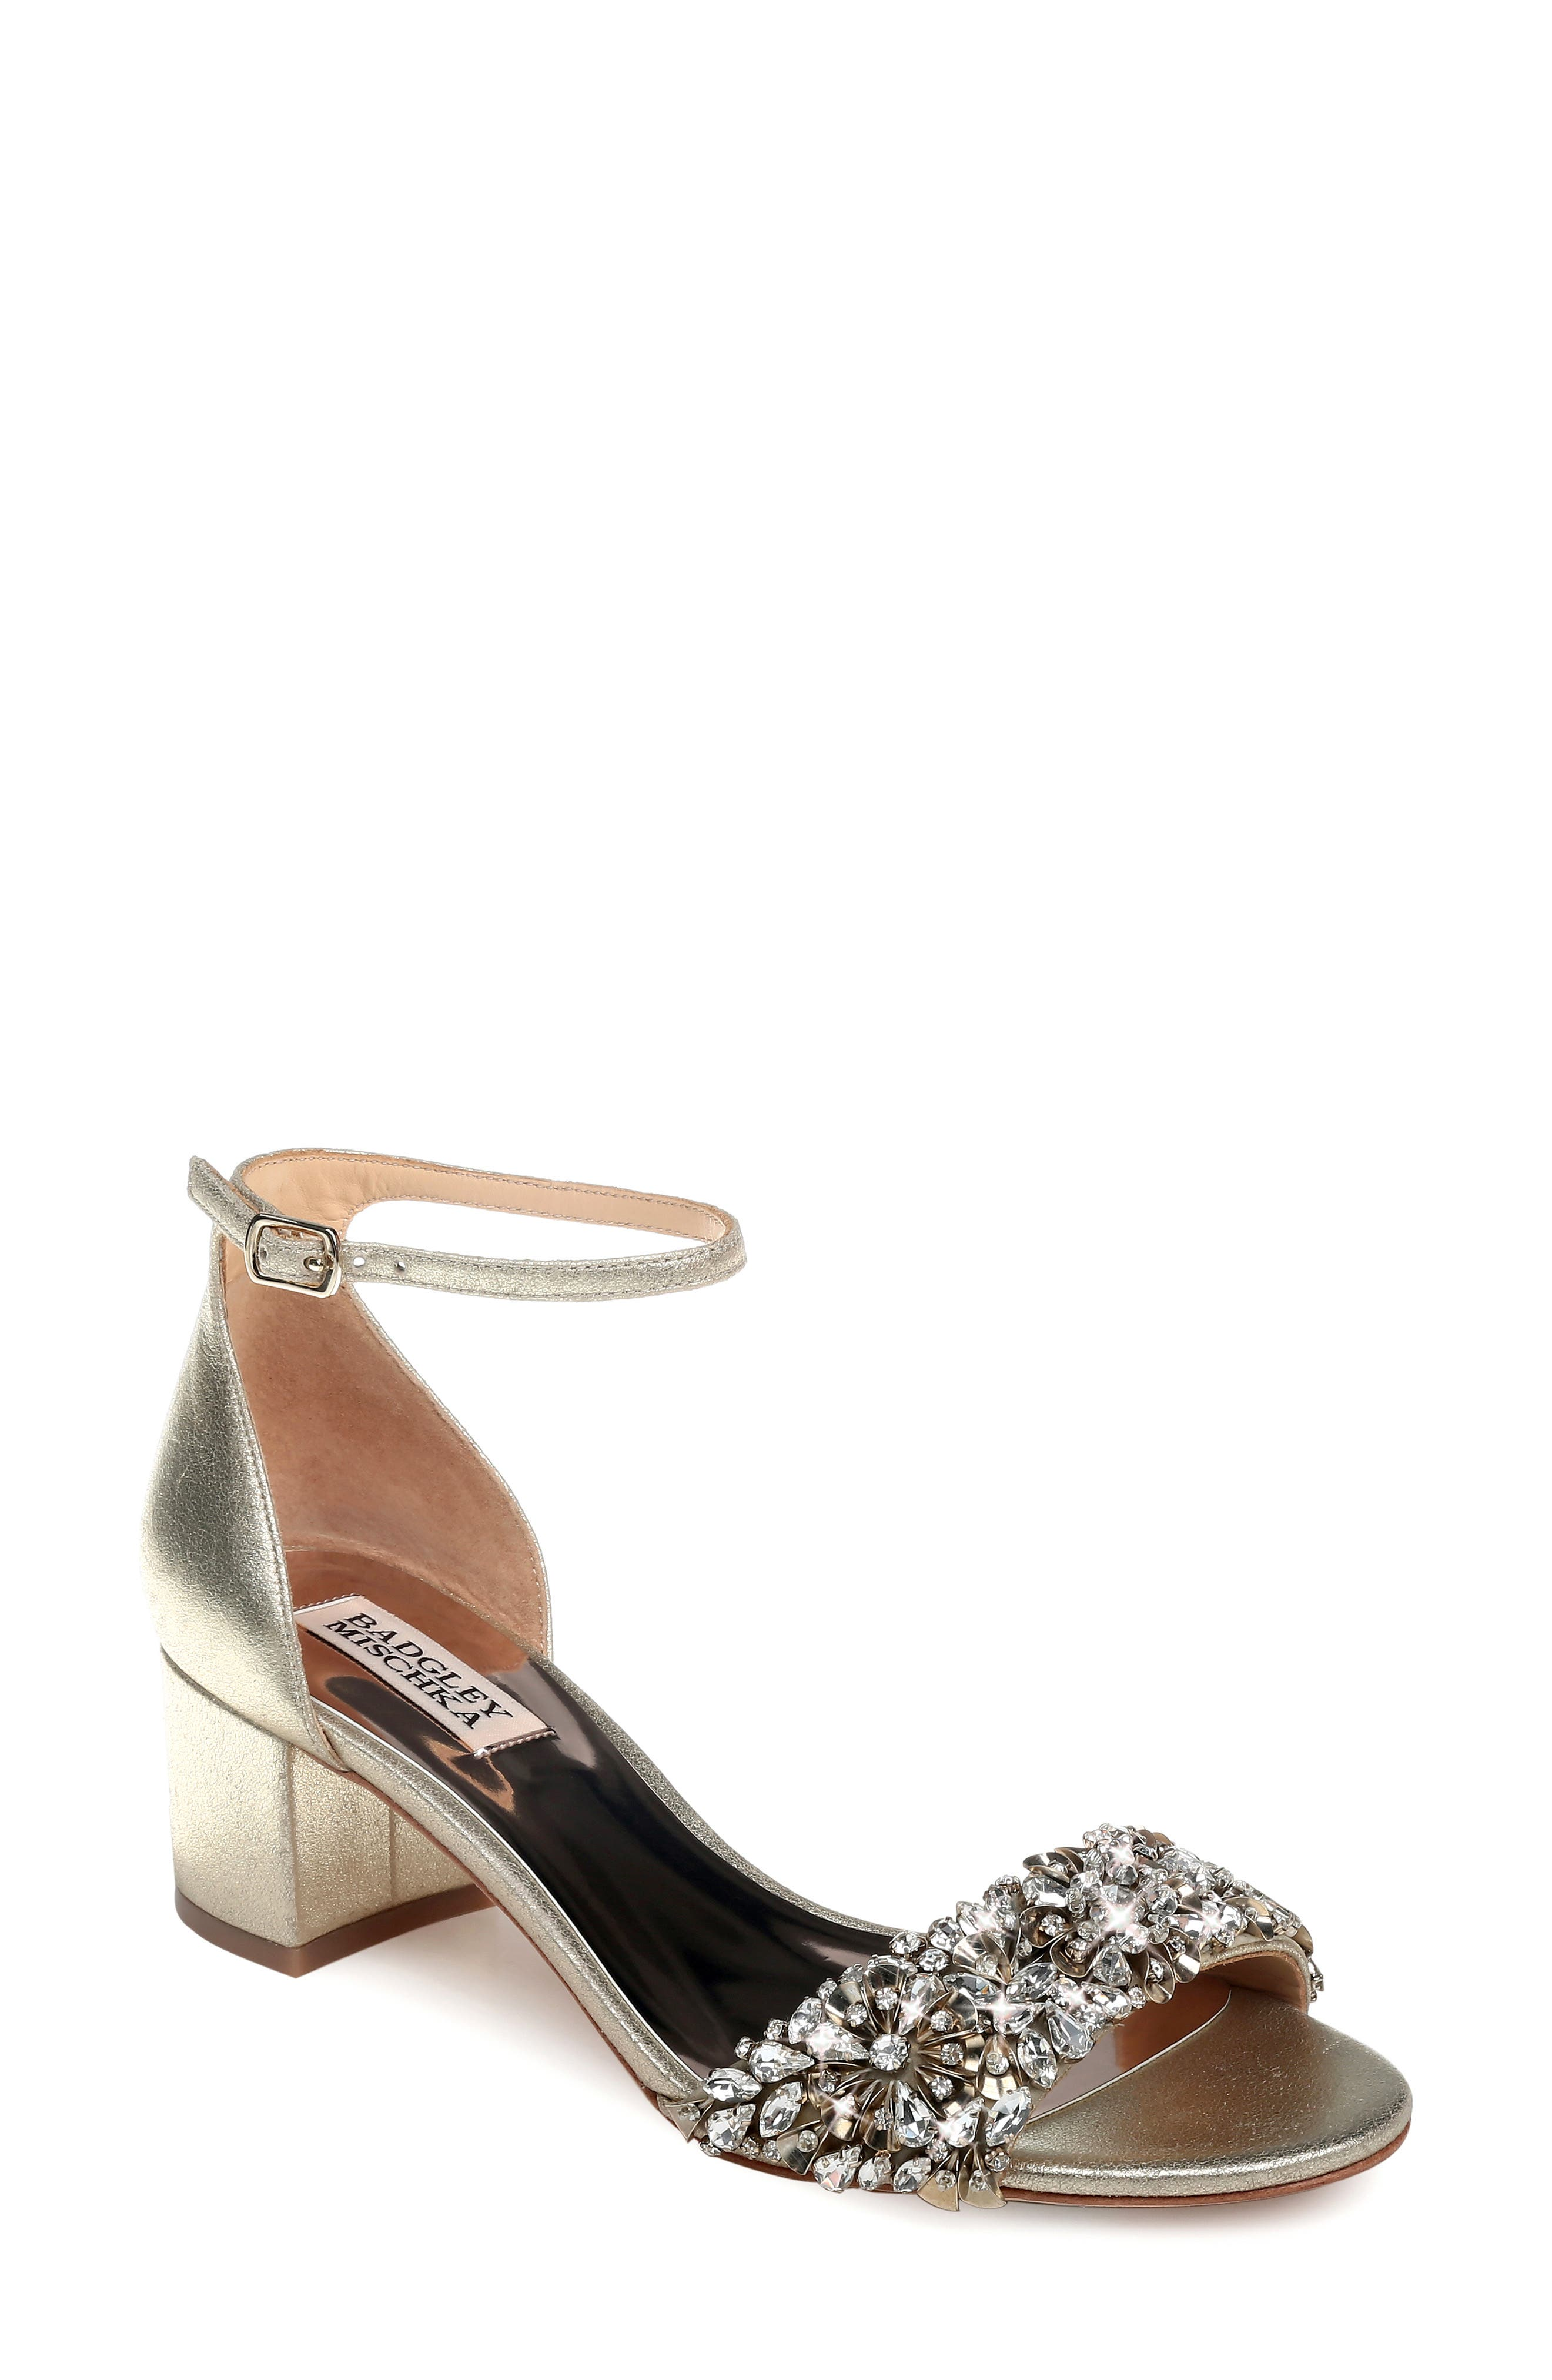 Vintage Inspired Wedding Dress | Vintage Style Wedding Dresses Womens Badgley Mischka Vega Ii Metallic Sandal Size 11 M - Metallic $255.00 AT vintagedancer.com